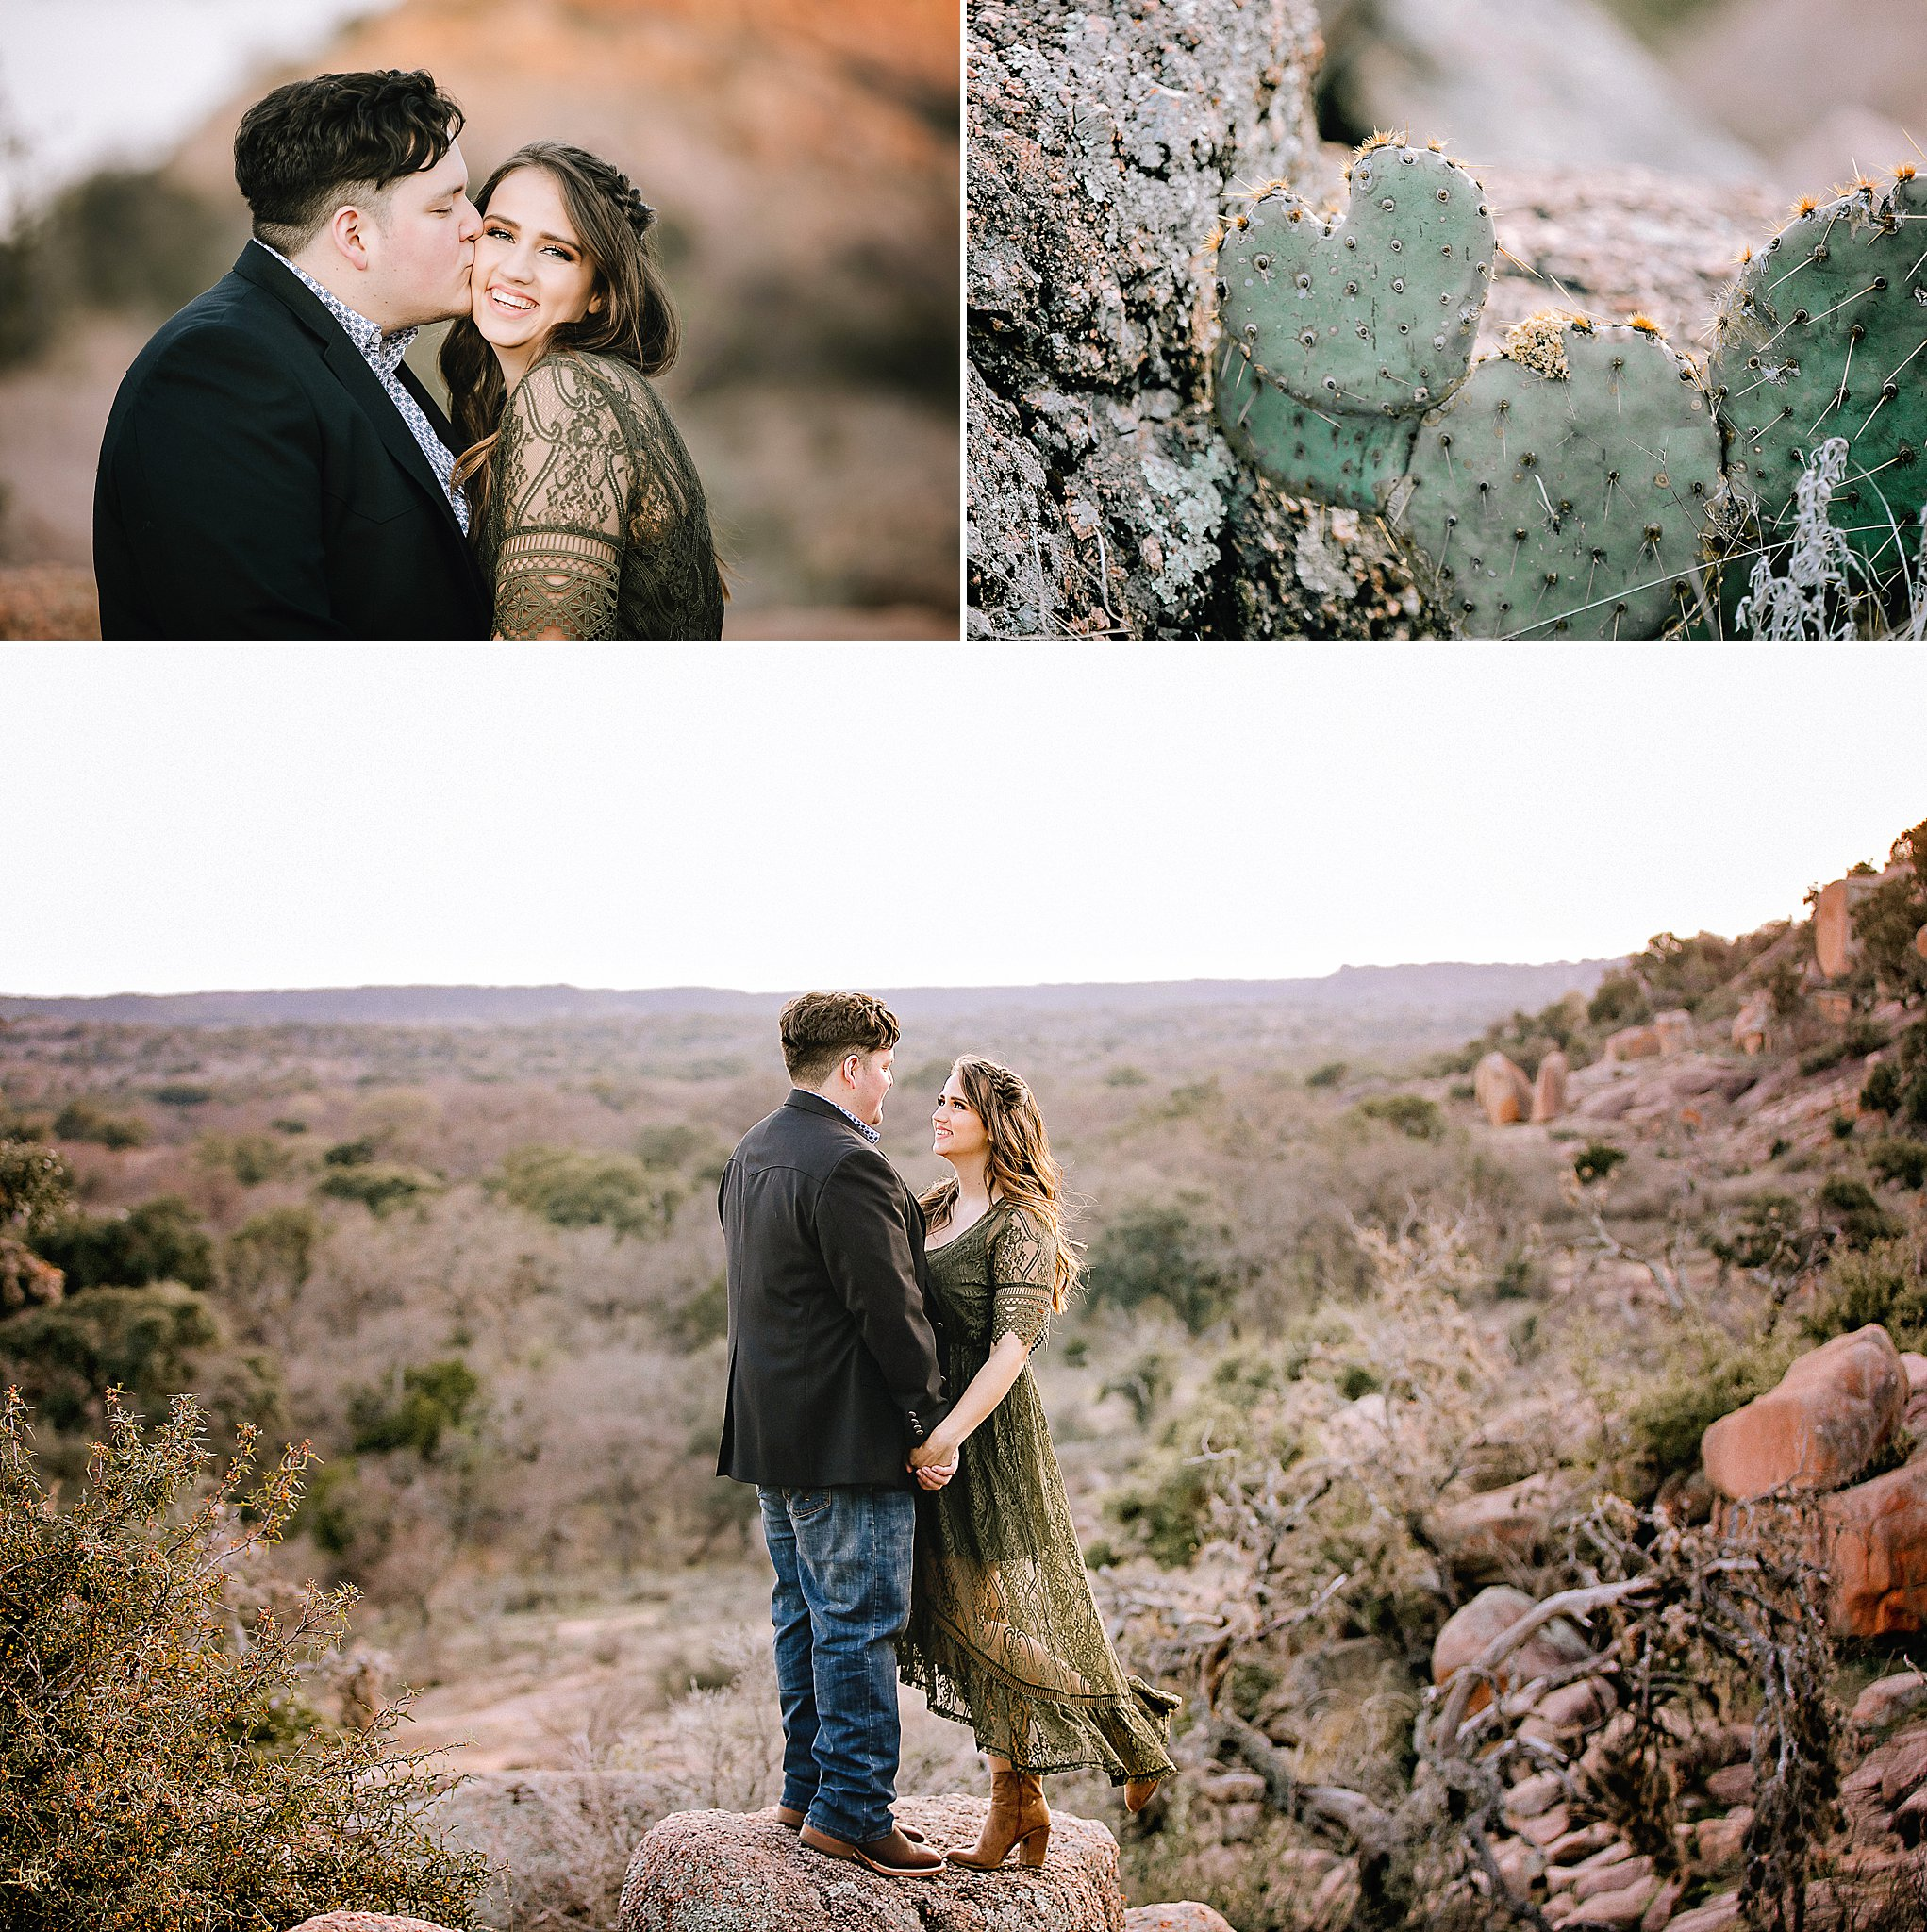 Carly-Barton-Photography-Fredericksburg-Texas-Engagement-Session-Enchanted-Rock-Photos_0005.jpg